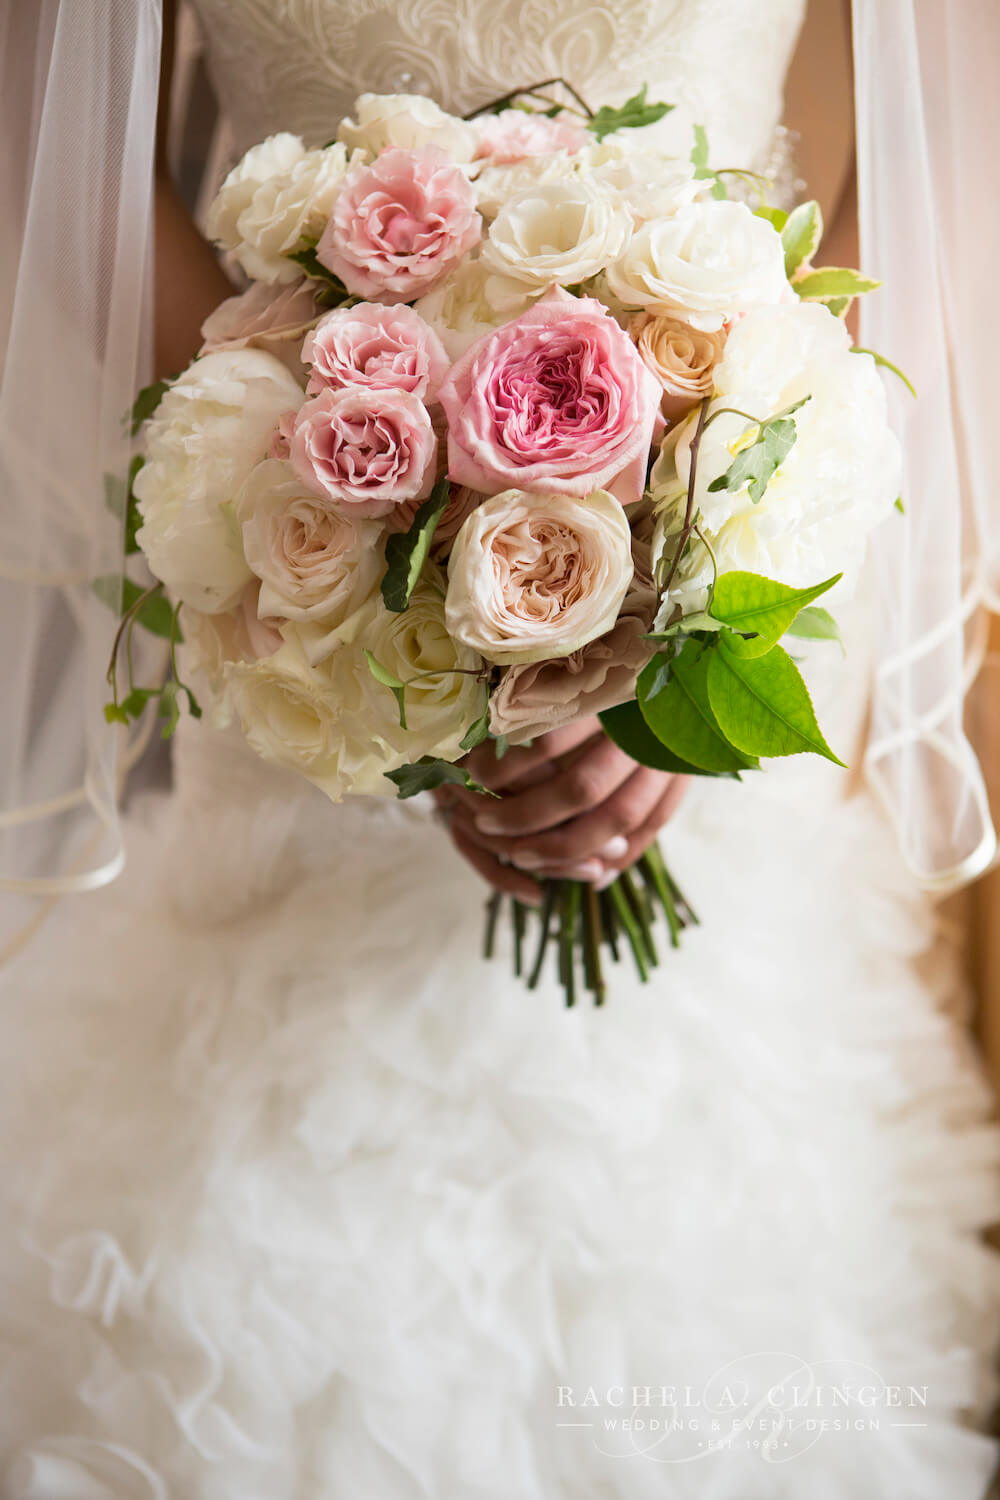 Wedding bouquets garden roses wedding decor toronto rachel a clingen wedding event design - Garden rose bouquet ...